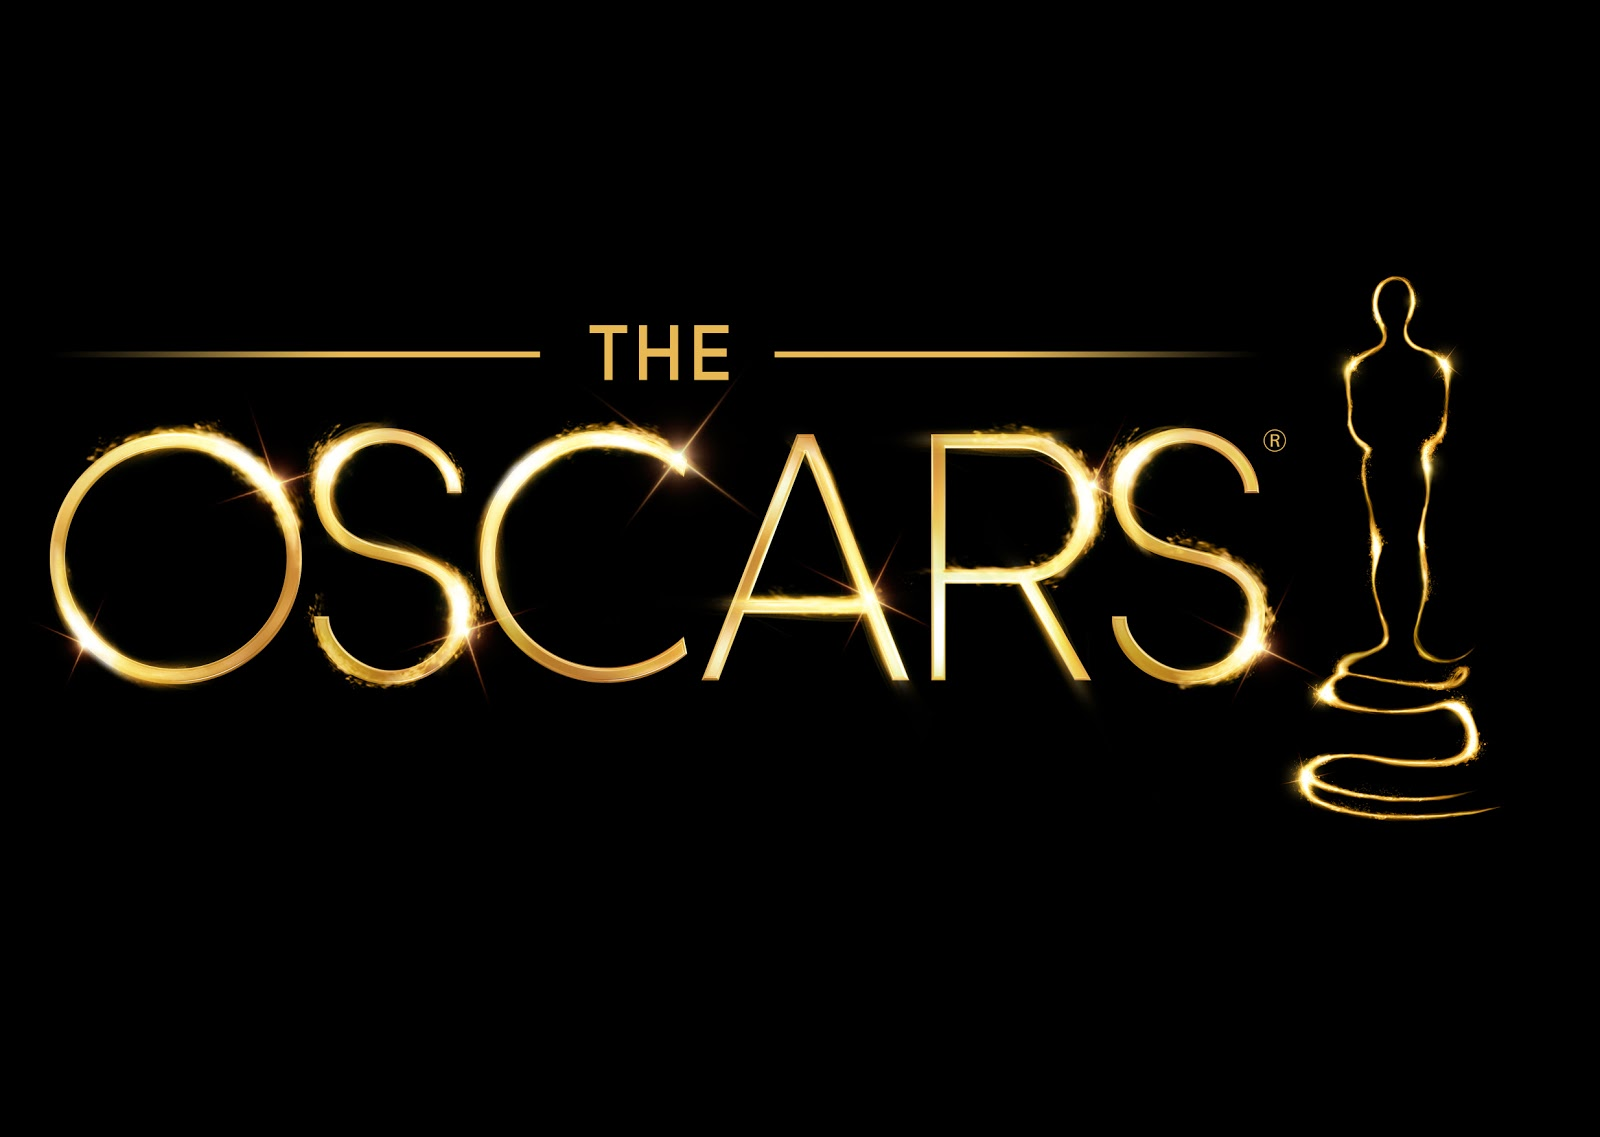 Academy Awards Images | Academy Awards Picture